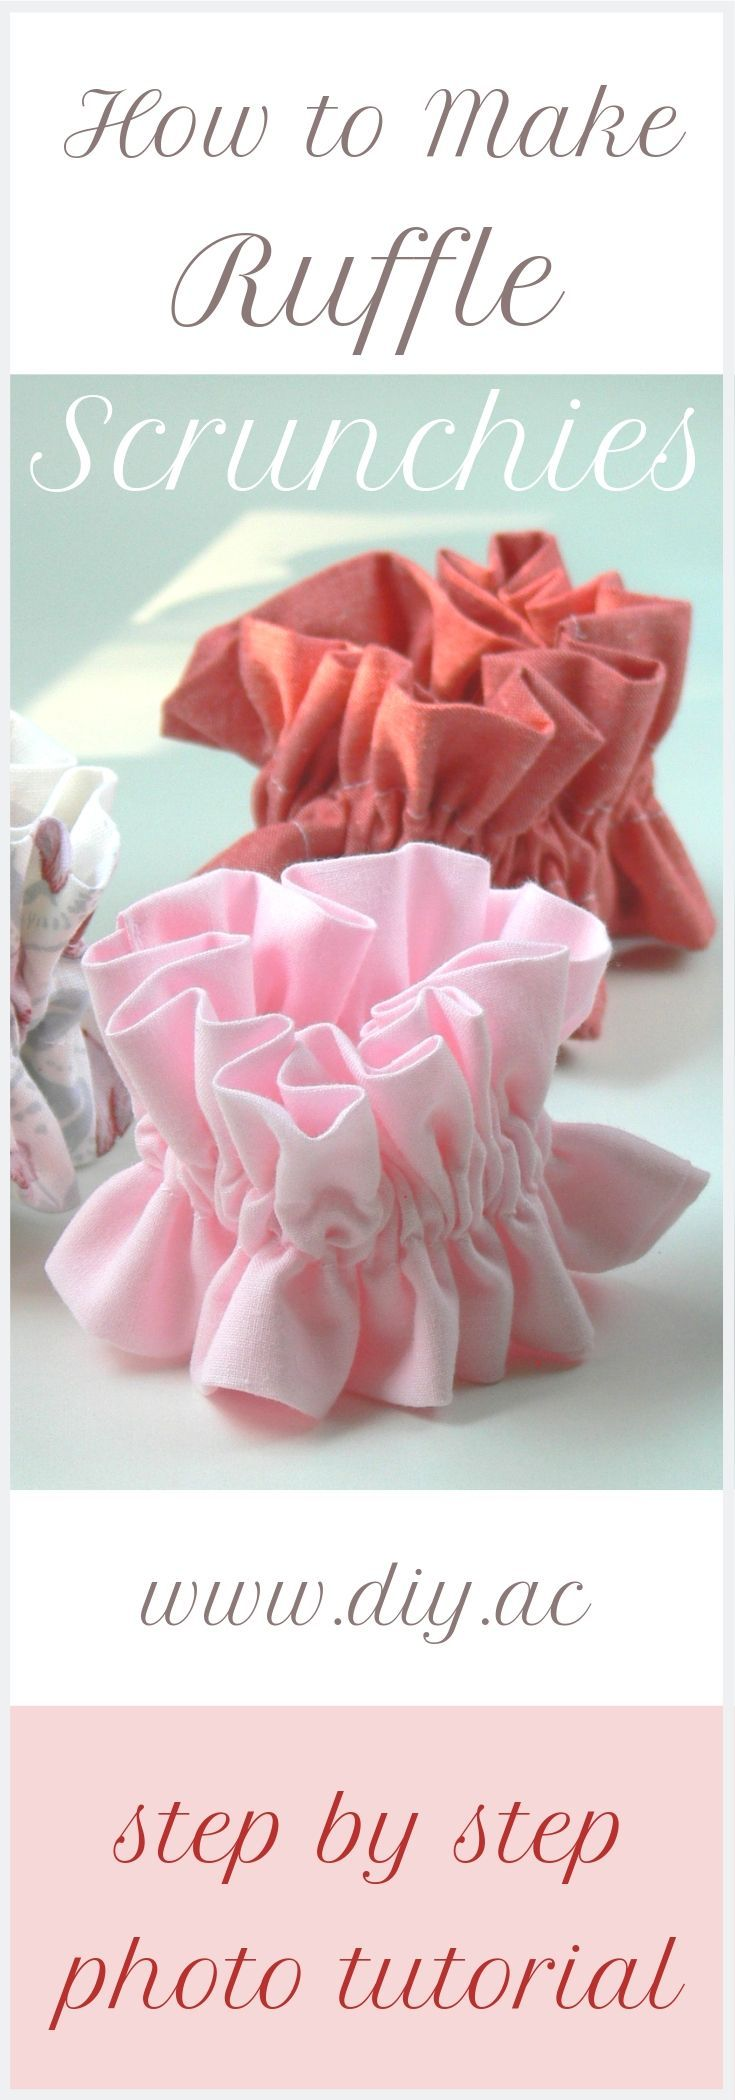 Scrunchies DIY - How to Make Scrunchies Step by Step - Free Sewing Pattern for Beginners